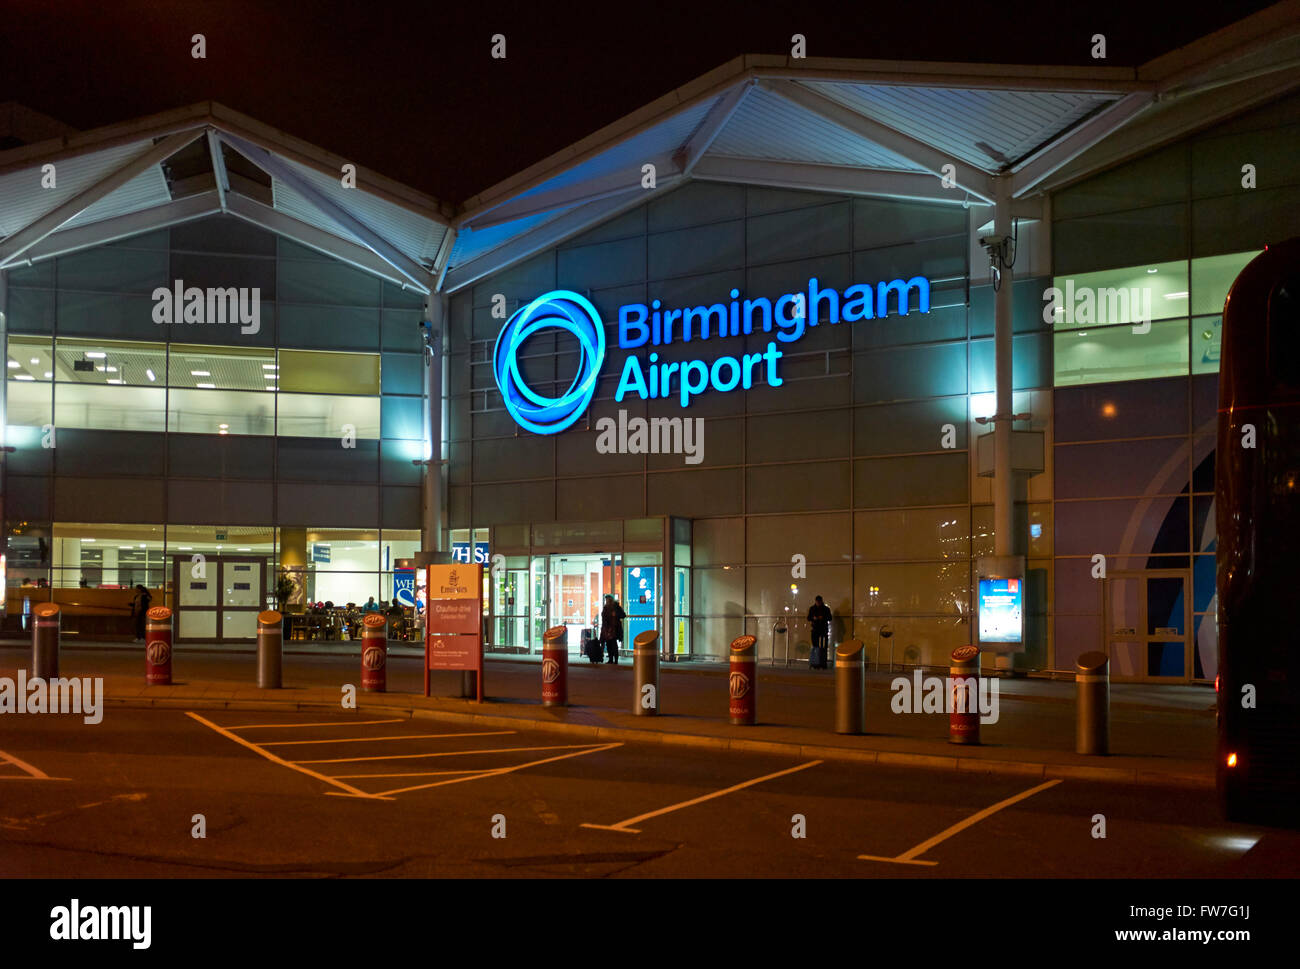 Birmingham airport at night with logo Stock Photo